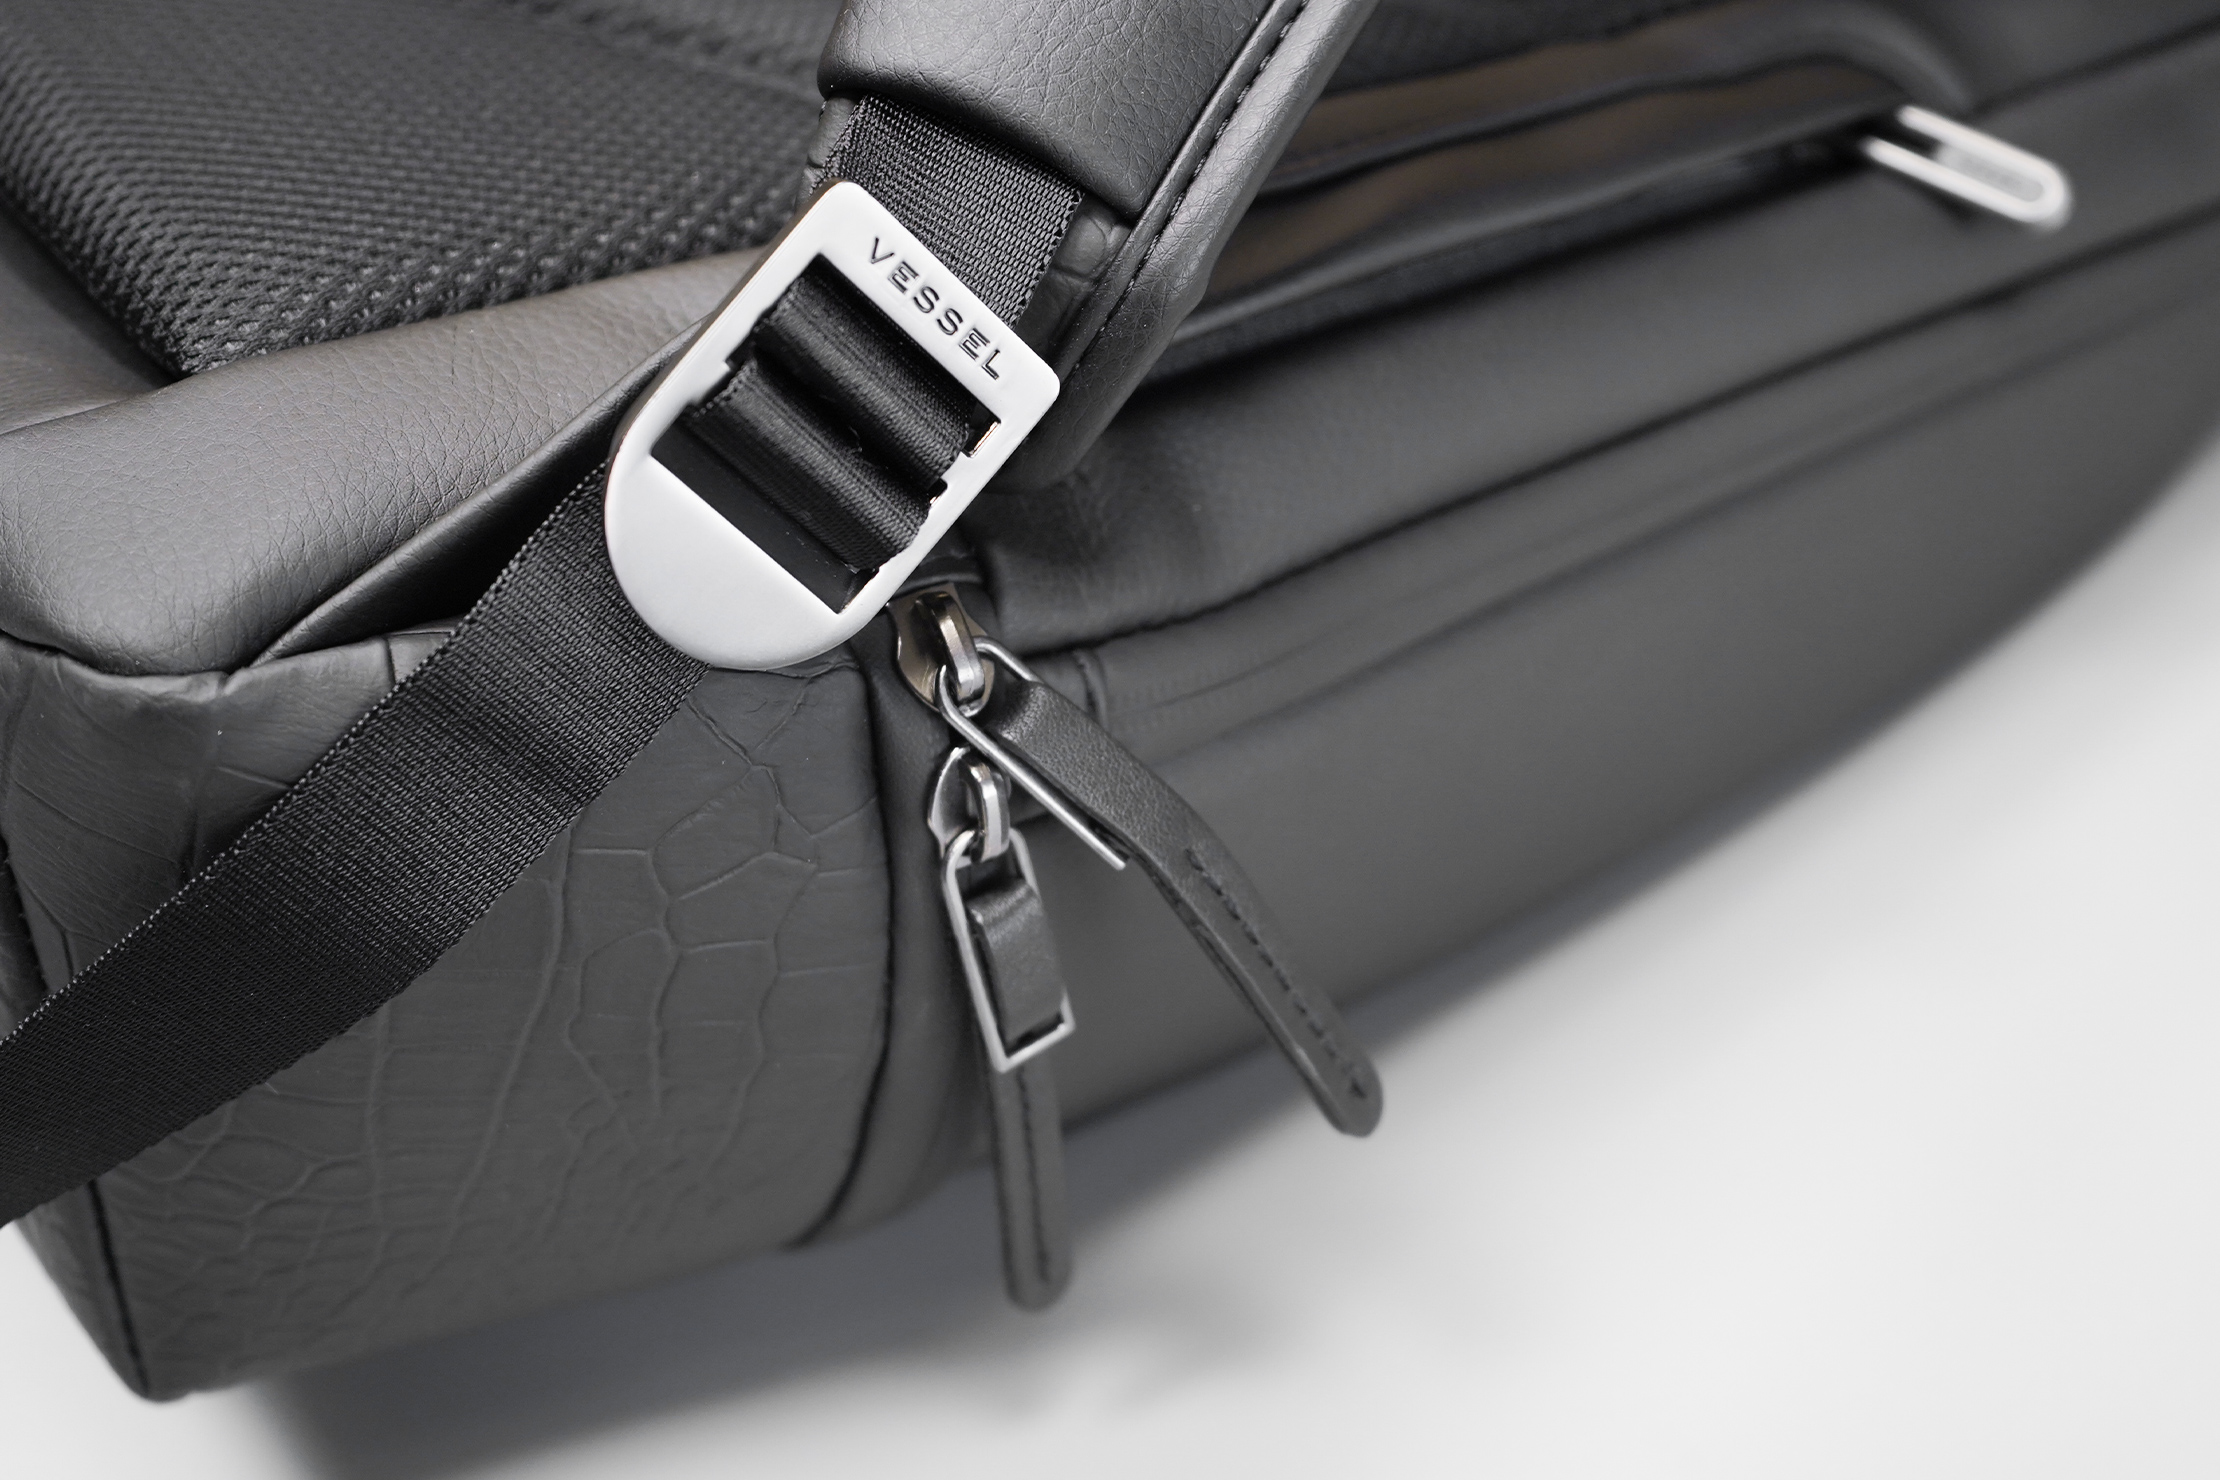 VESSEL Signature 2.0 Backpack Zippers and Hardware